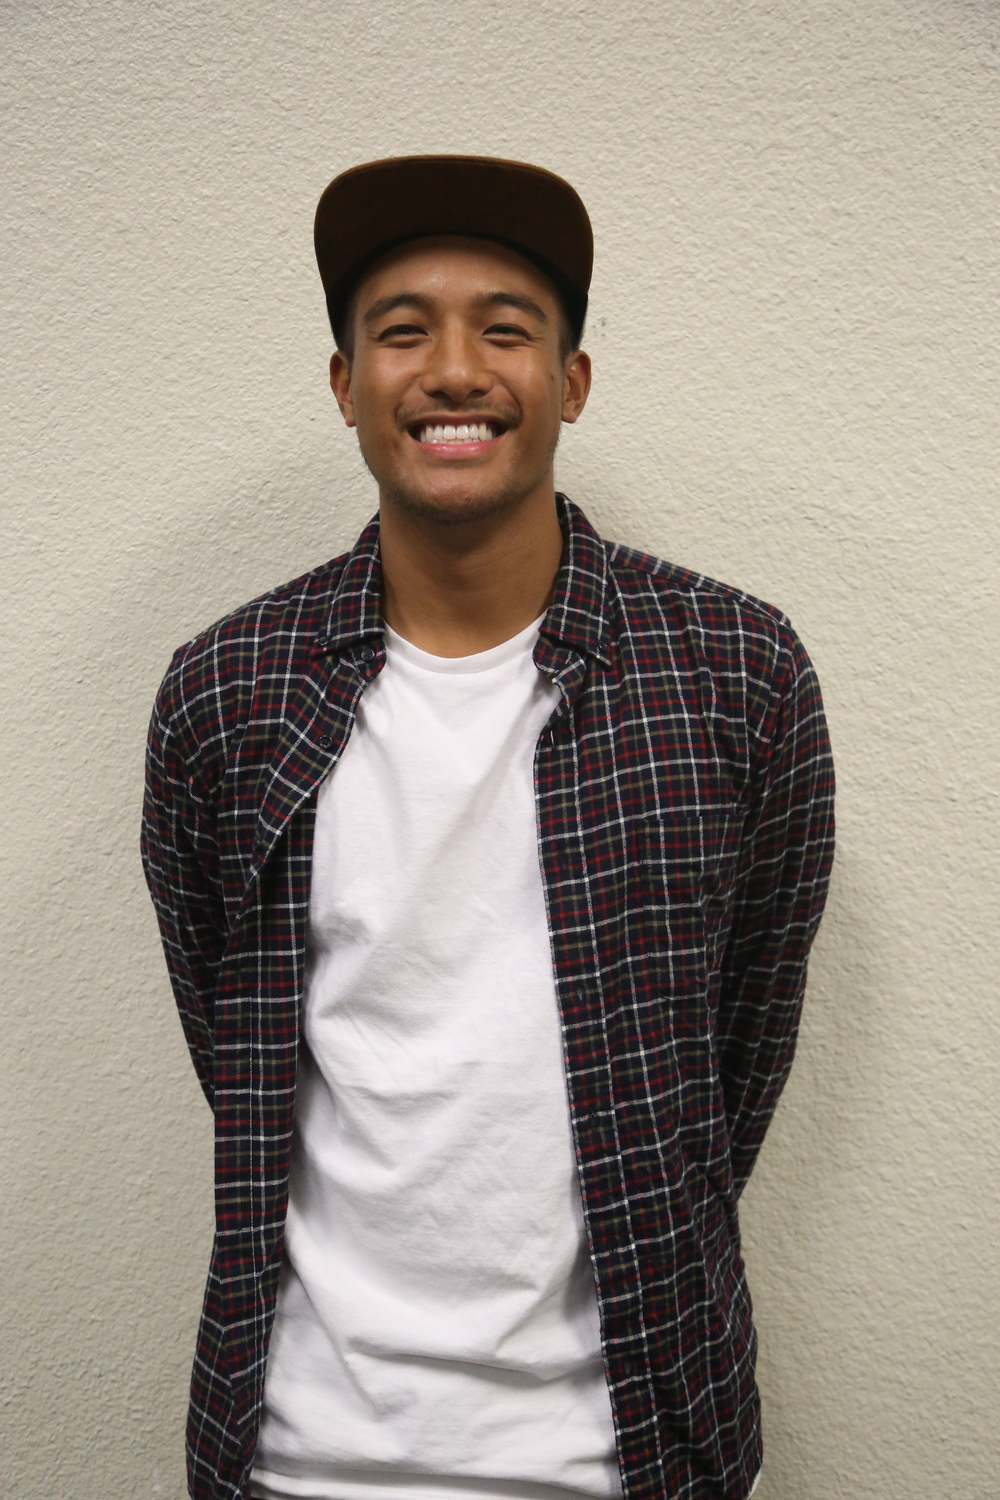 "Name:  Gabriel Nicholas Barabad Gonzalez    Position:  Sports Coordinator    Year:  4th   Major:  Kinesiology    Hometown:  Daly City, CA   Favorite Food:  Sushi & Burritos    Favorite Movie:     Favorite Number:  10   Theme Song:  Mr. Suave by Vhong Navarro    Random Fact:  I love picking my nose.   Favorite Quote:  ""F*ck being sad, b*tch!"" - Zachary Piona"